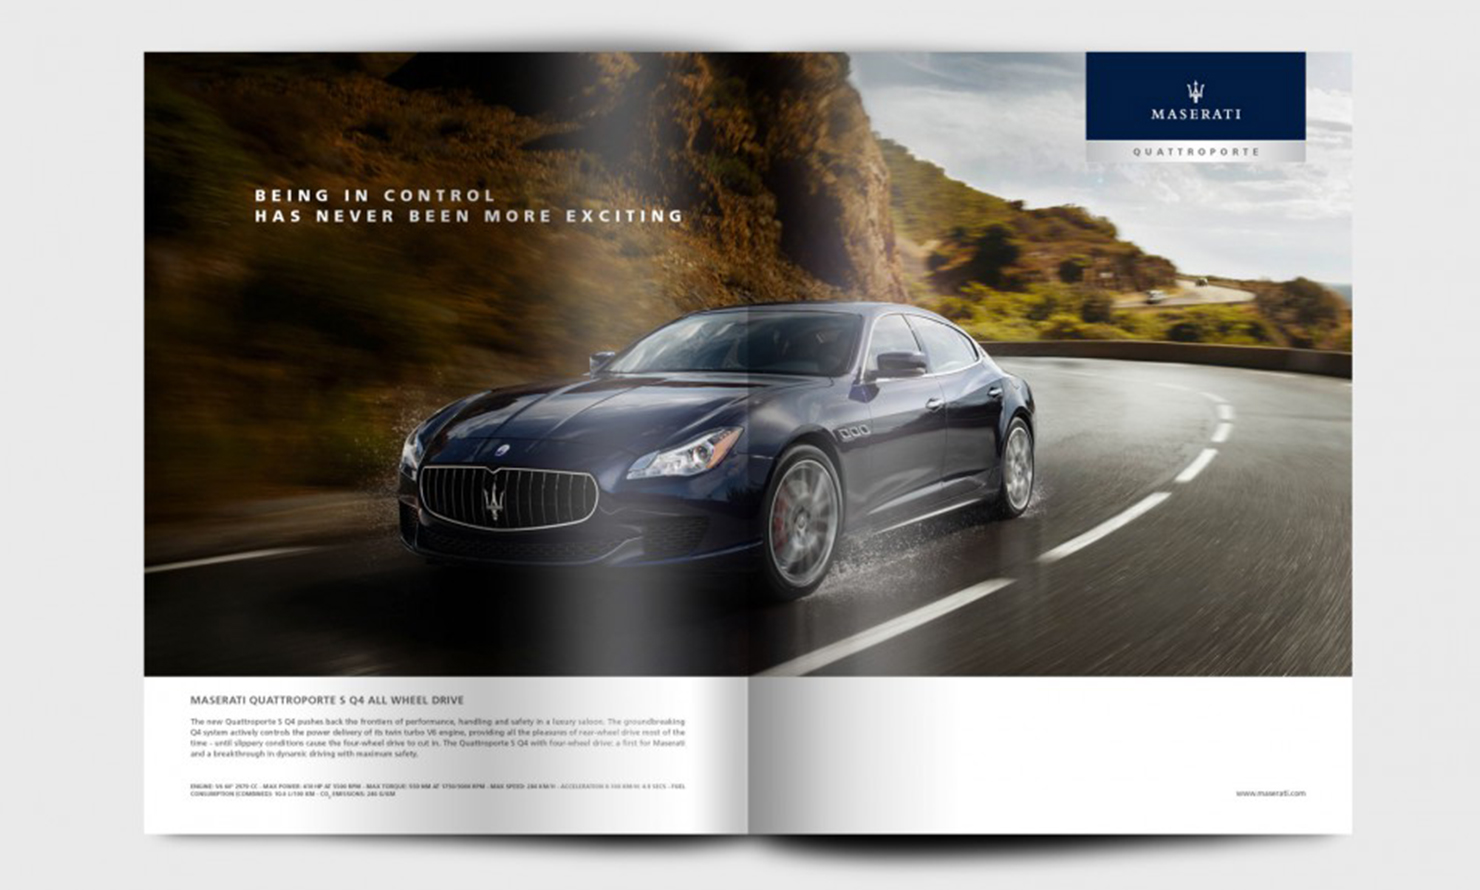 https://kubelibre.com/uploads/Slider-work-tutti-clienti/maserati-quattroporte-SQ-4-AWD-being-in-control-has-never-been-more-exciting-1.jpg